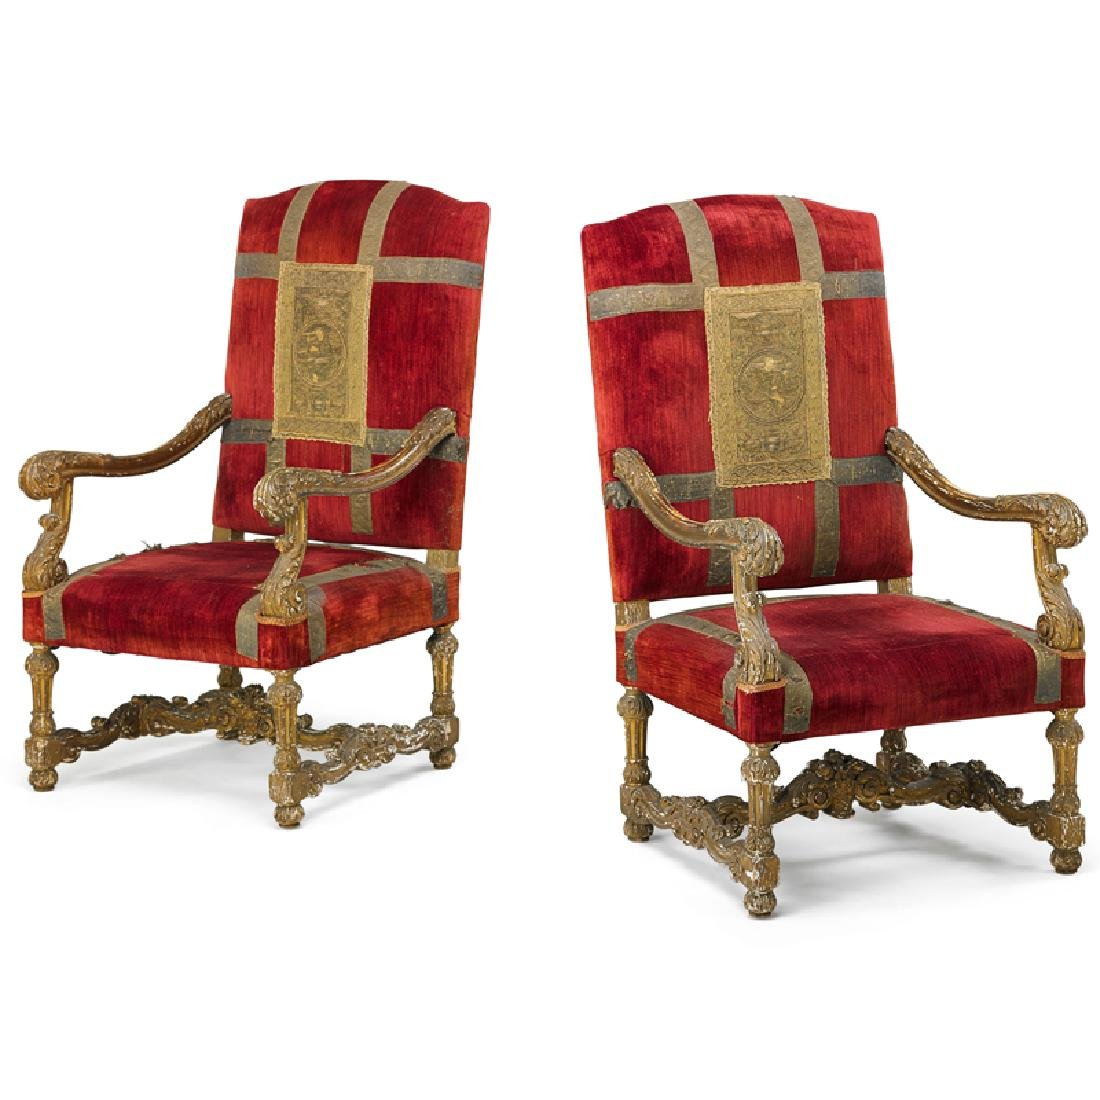 PAIR OF ITALIAN BAROQUE STYLE GILTWOOD ARMCHAIRS